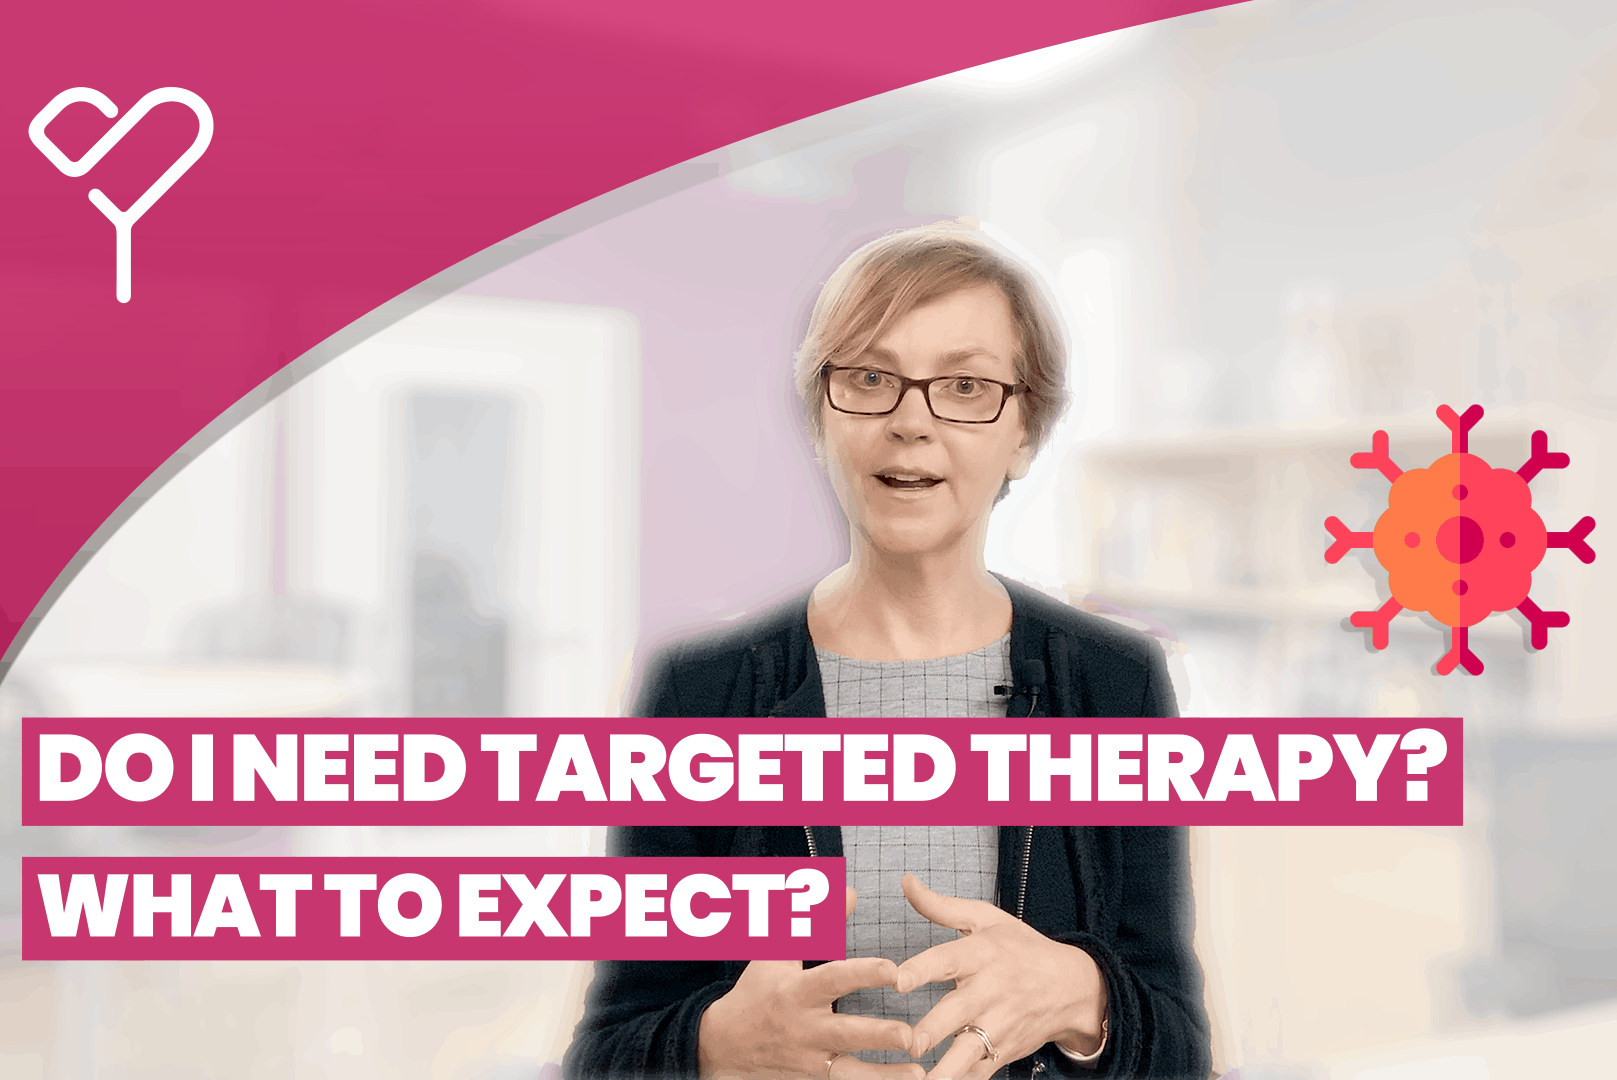 Do I Need Targeted Therapy to Treat my Breast Cancer?